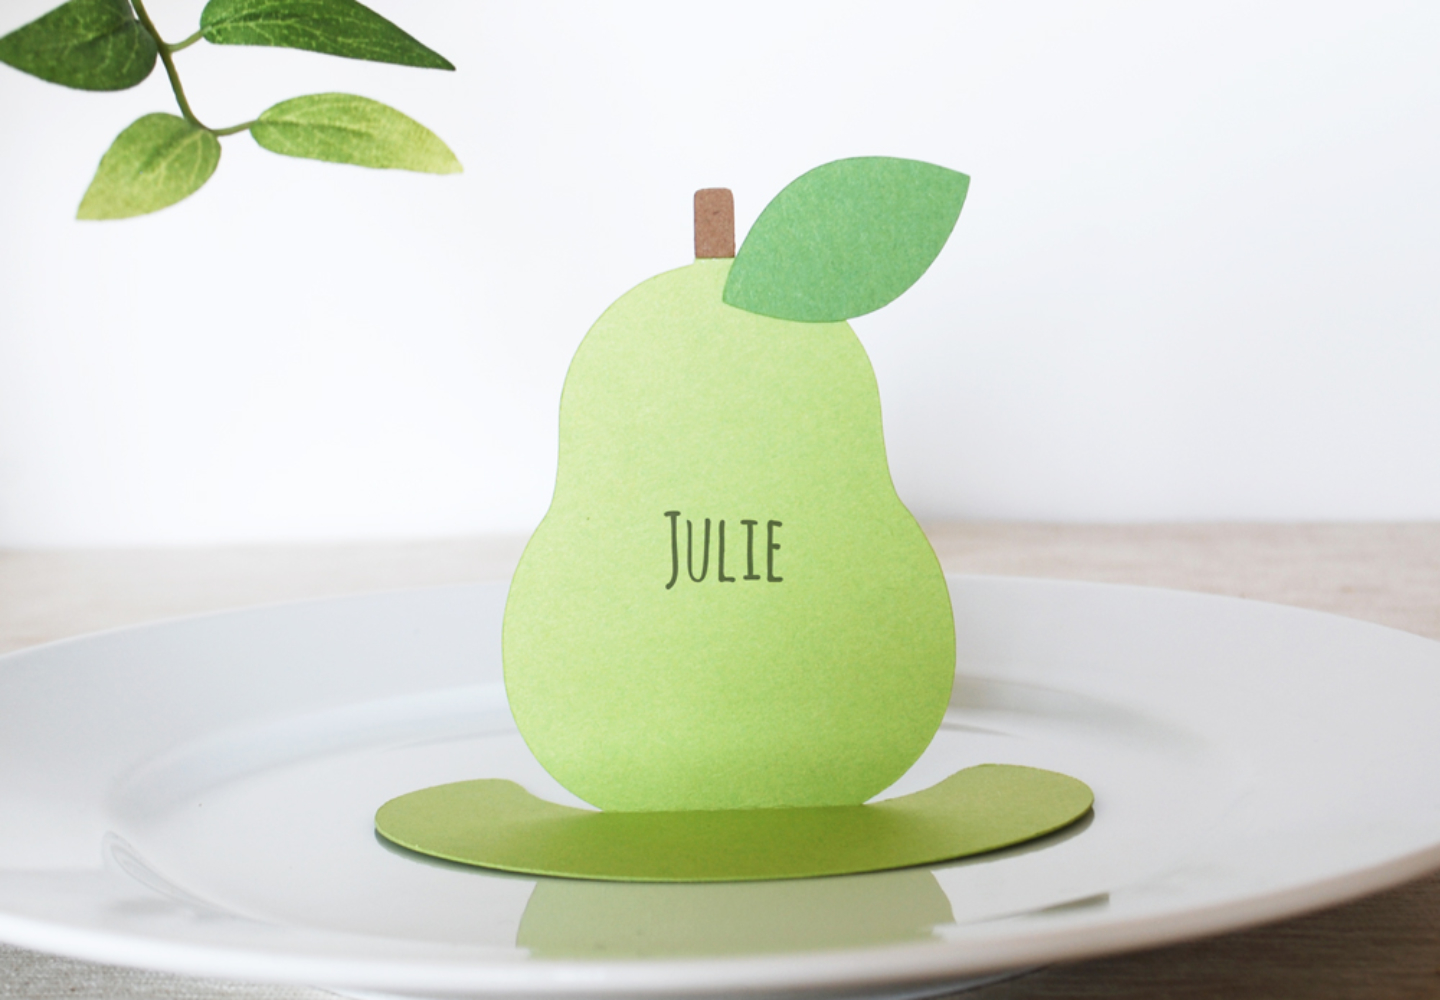 pear-withname